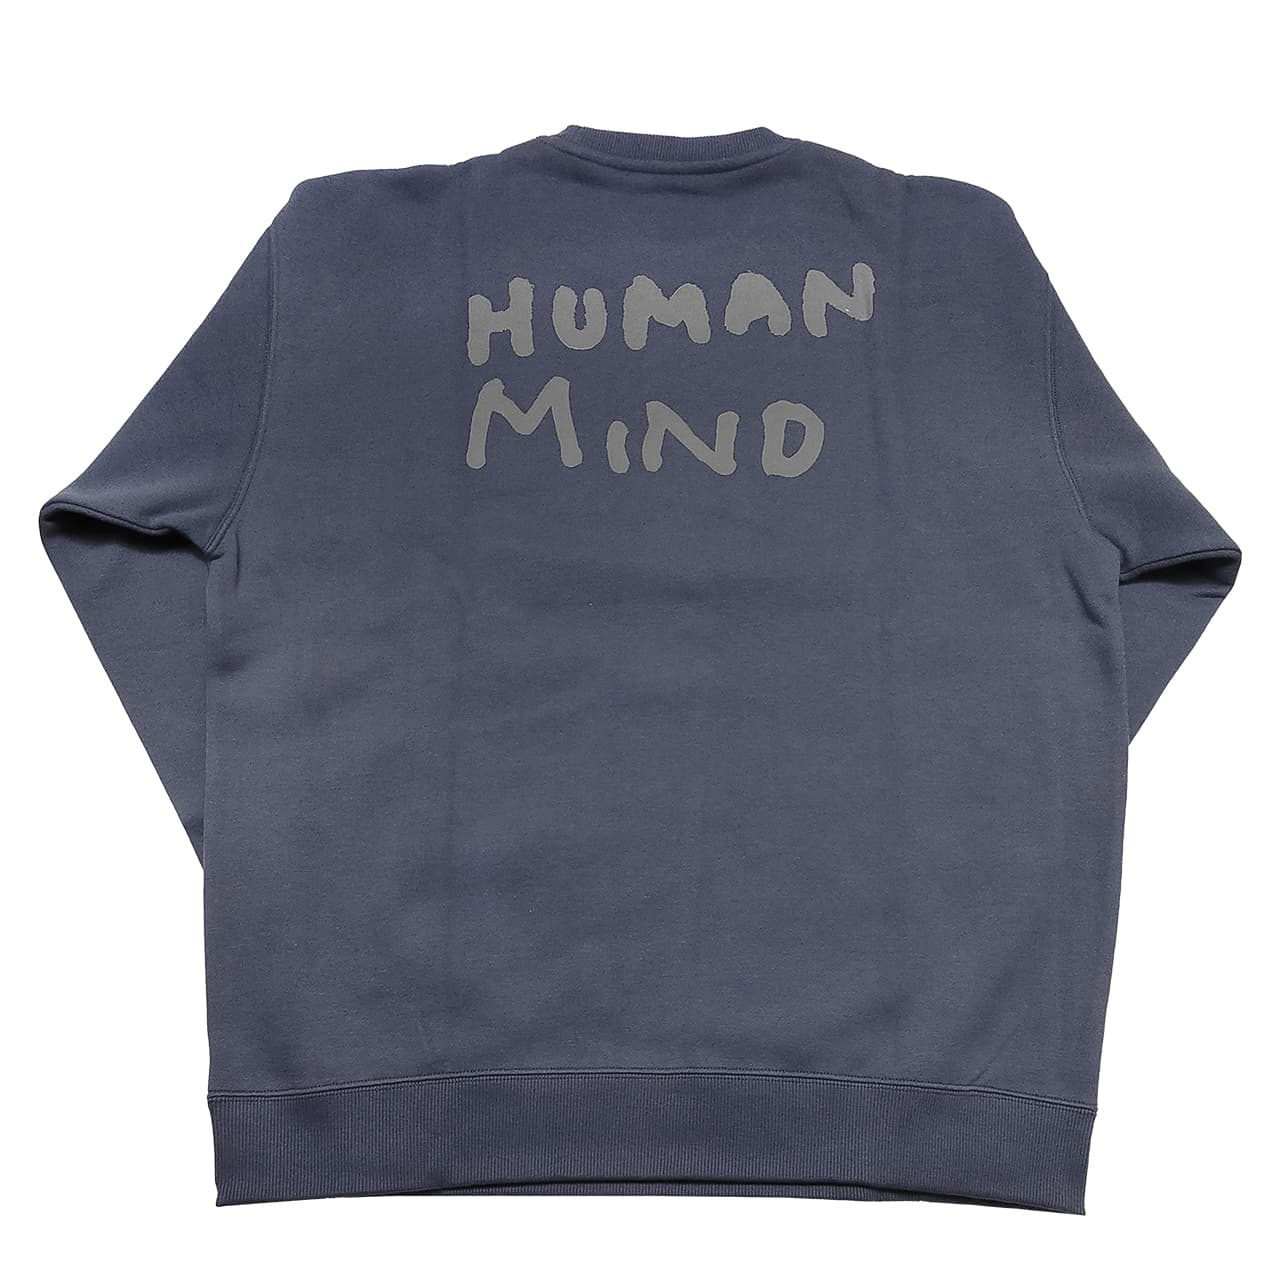 Human Mind Print Sweatshirt by MARK GONZALES (PURPLE)